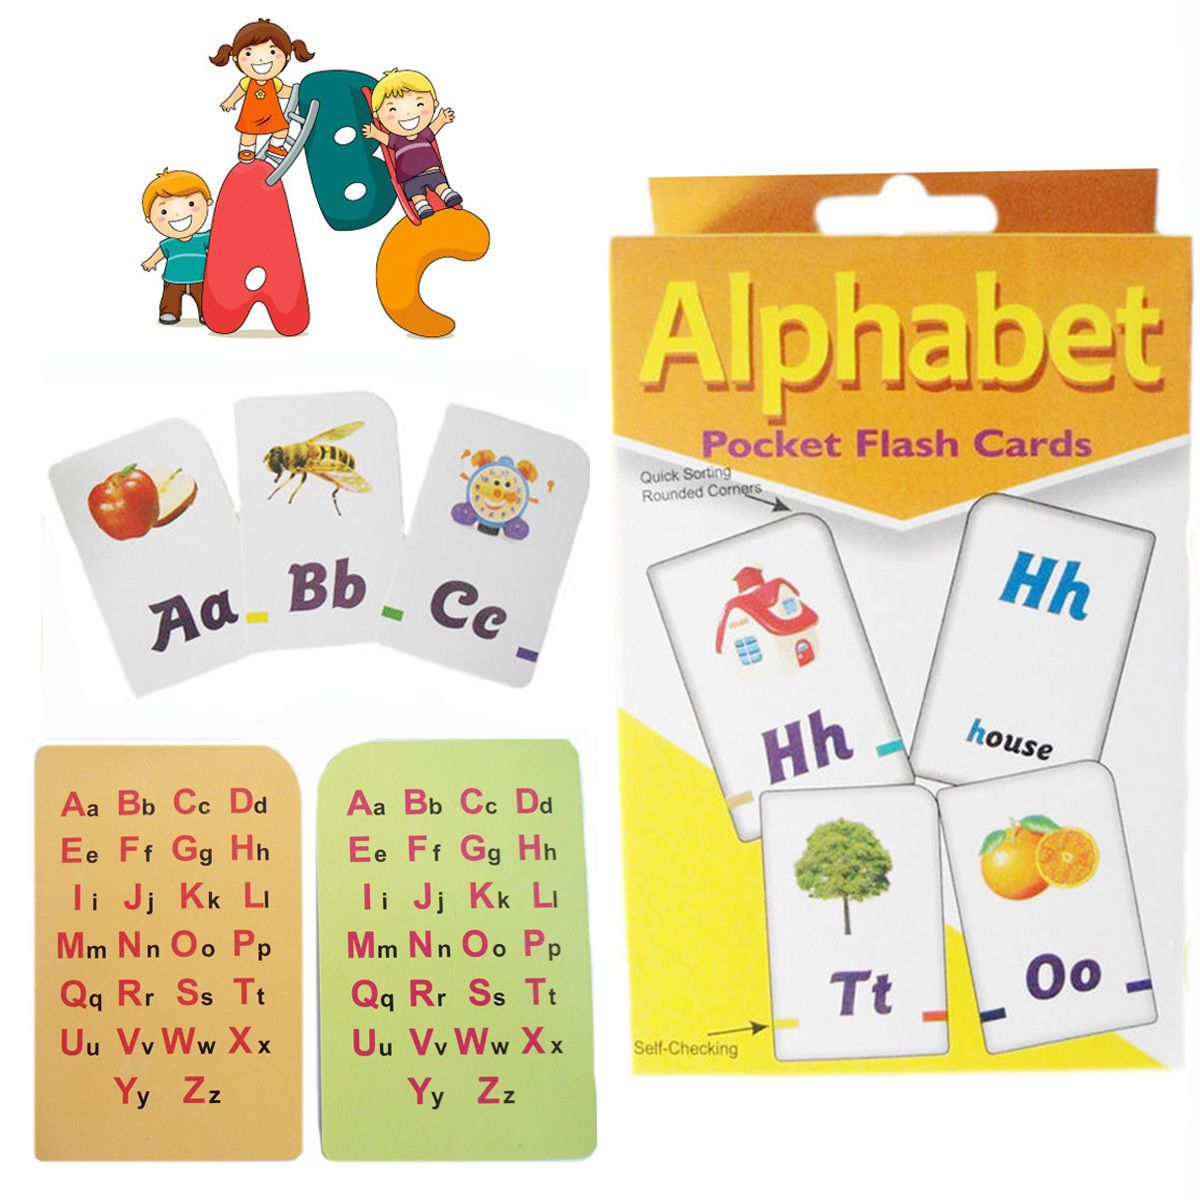 £2.65 GBP - A-Z Alphabet Flash Cards Kid's Learning Playing Game Card Children's Activity Pk #ebay #Collectibles